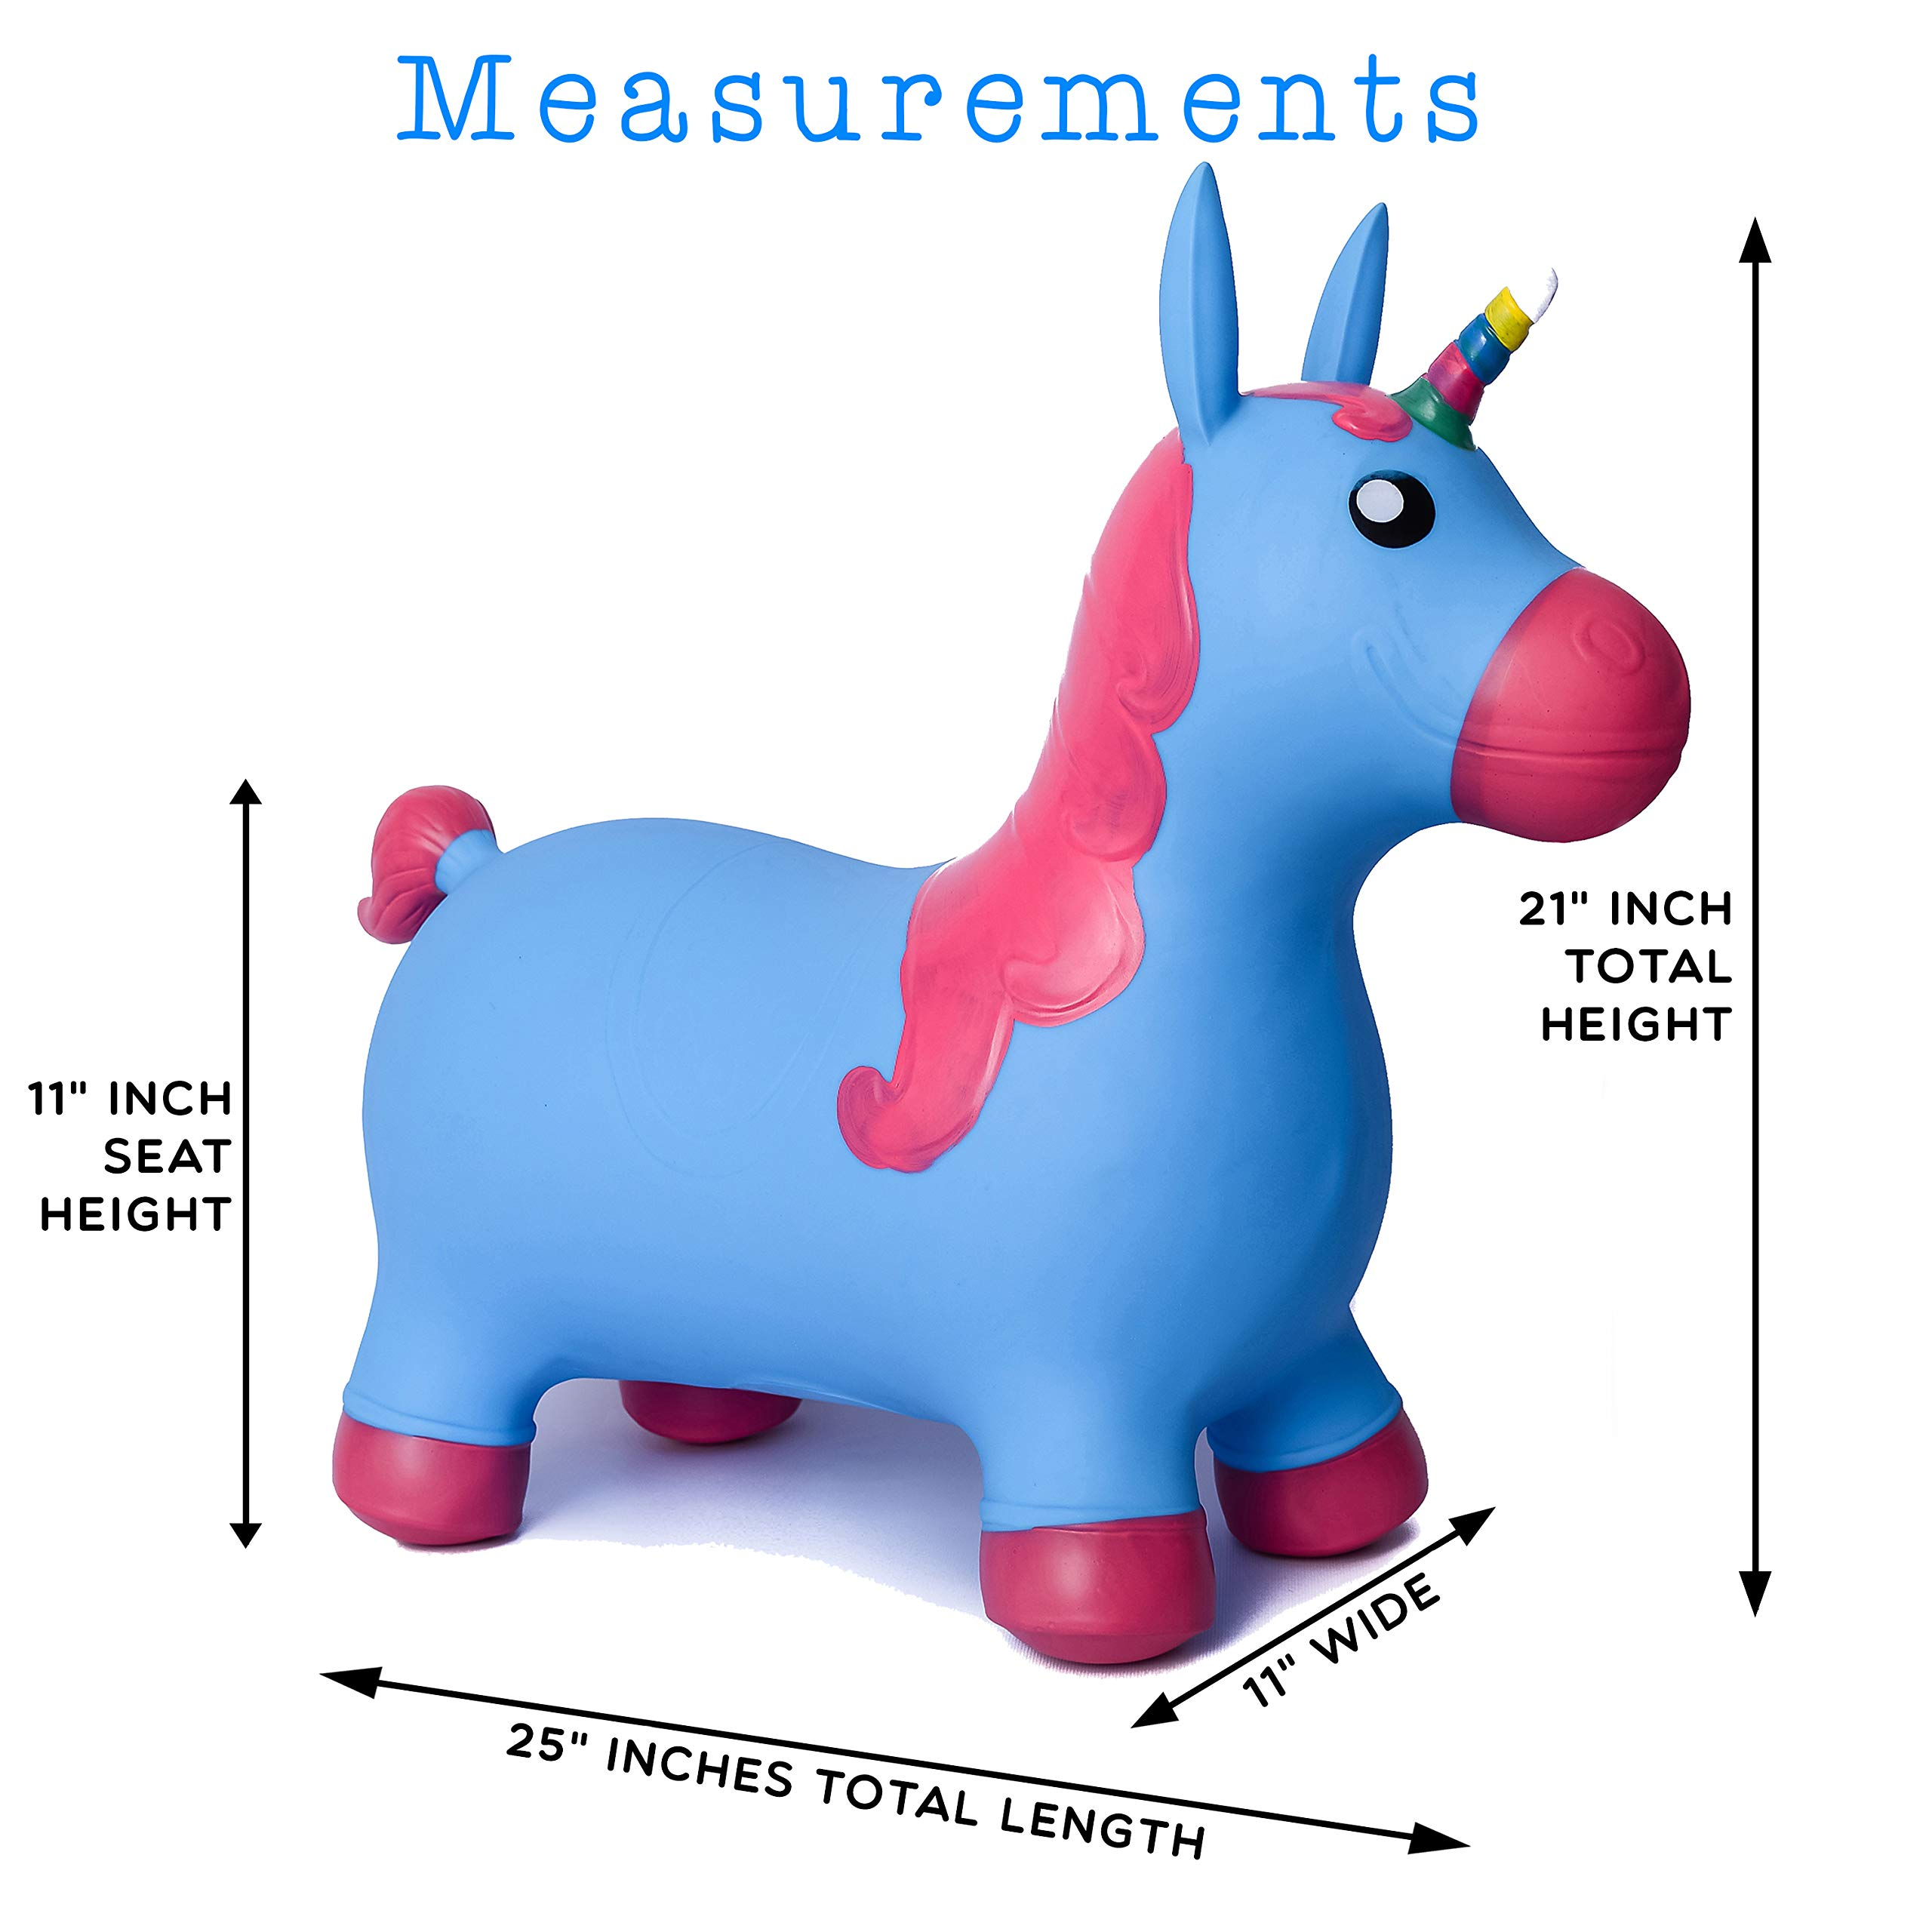 Kiddie Play Hopper Ball Unicorn Inflatable Hoppity Hop Bouncy Horse Toy (Pump Included) by Kiddie Play (Image #3)